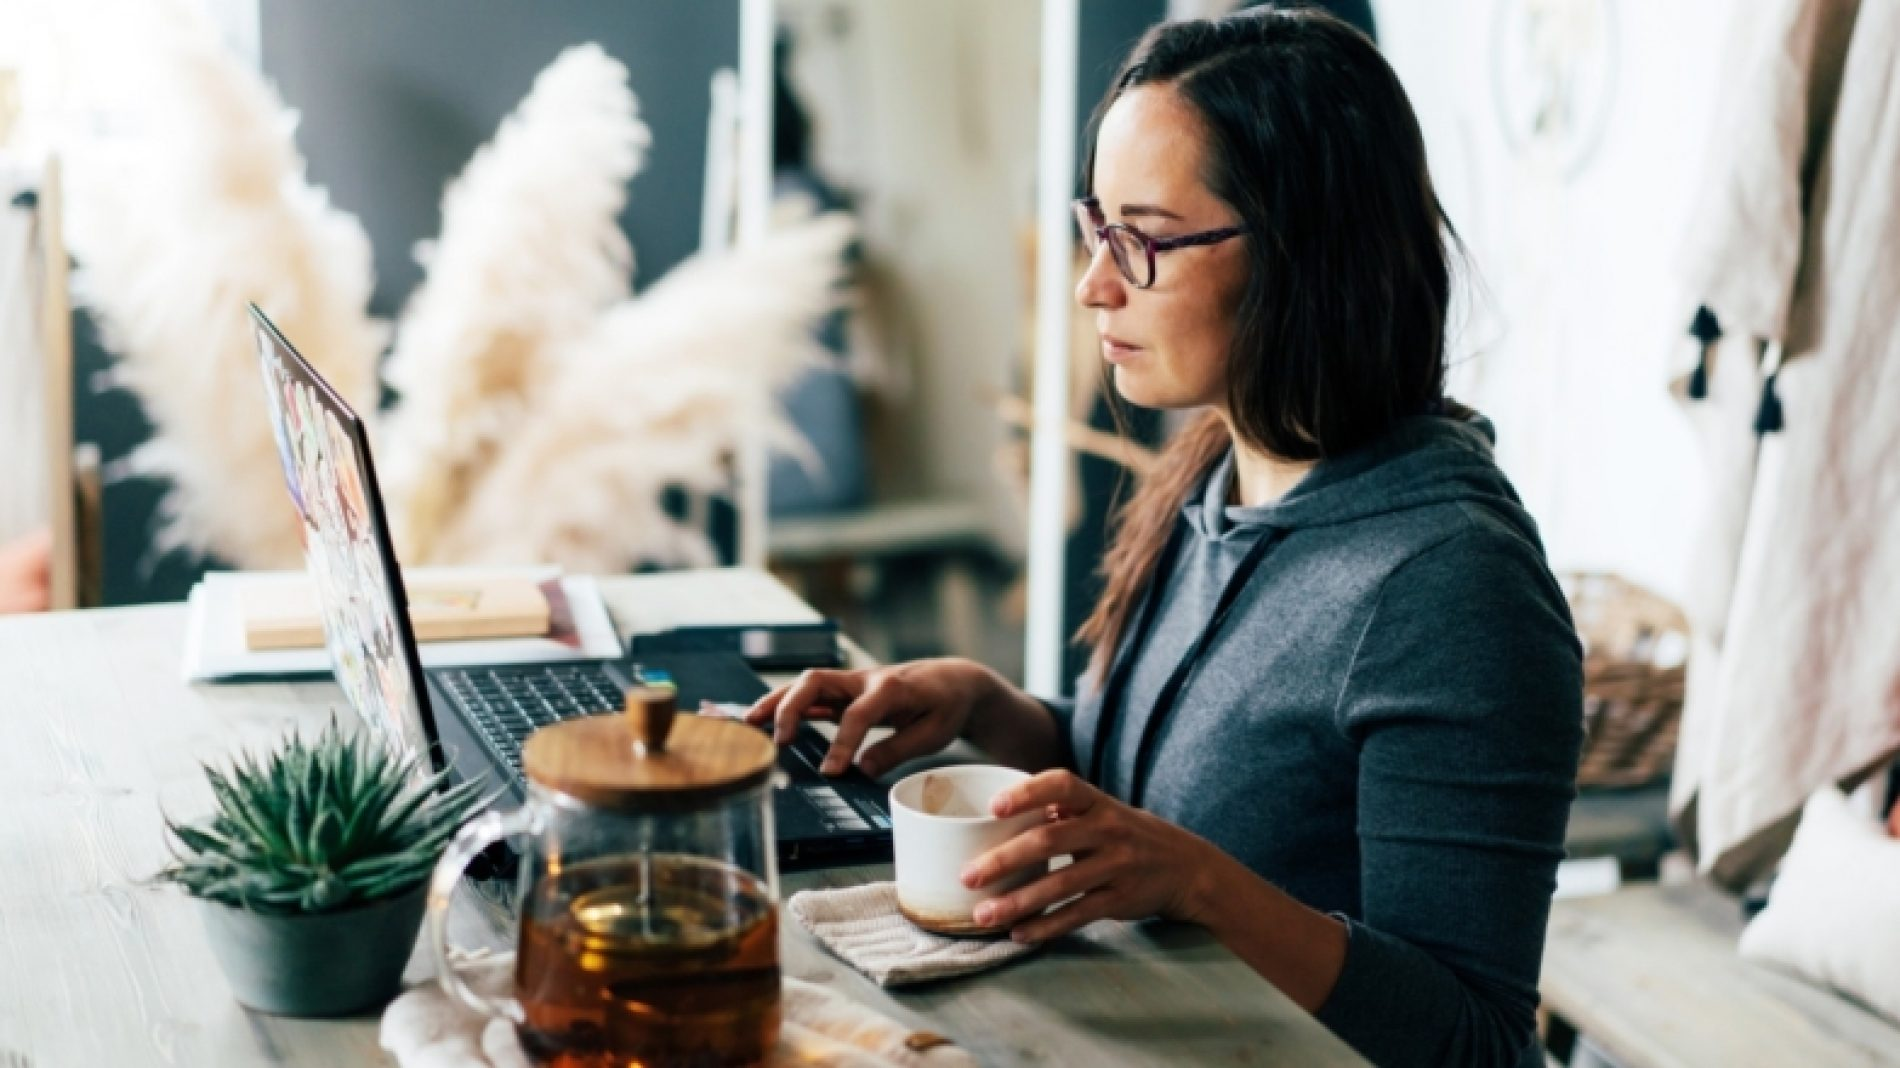 Young-person-studying-at-home-with-tea-U8tUa8